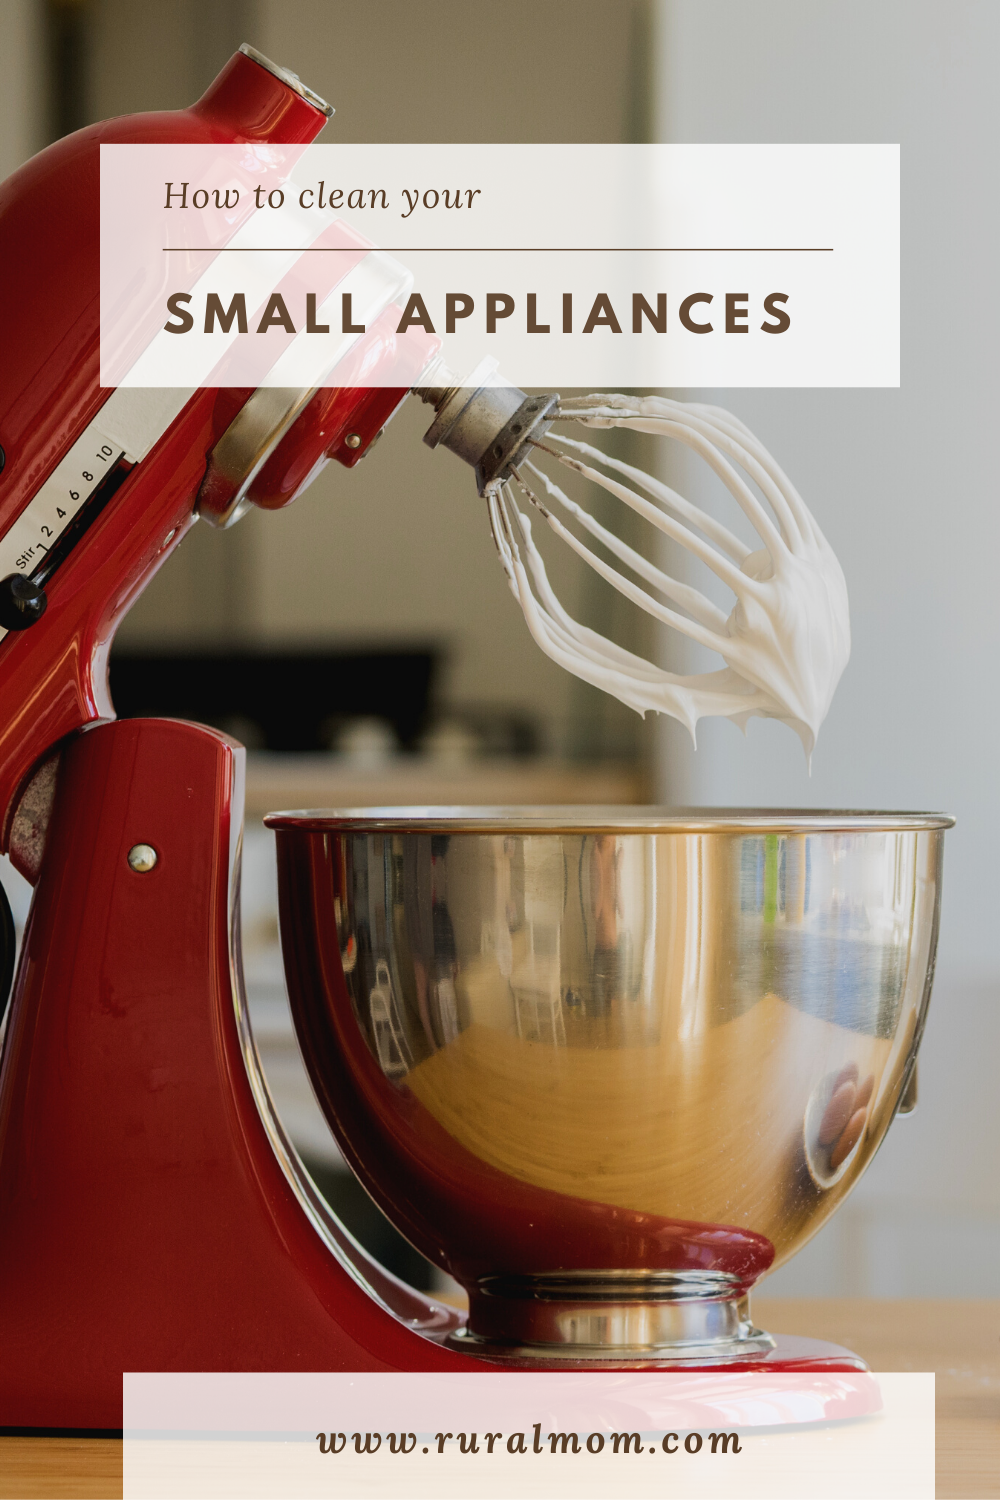 How to Keep Your Small Appliances Clean